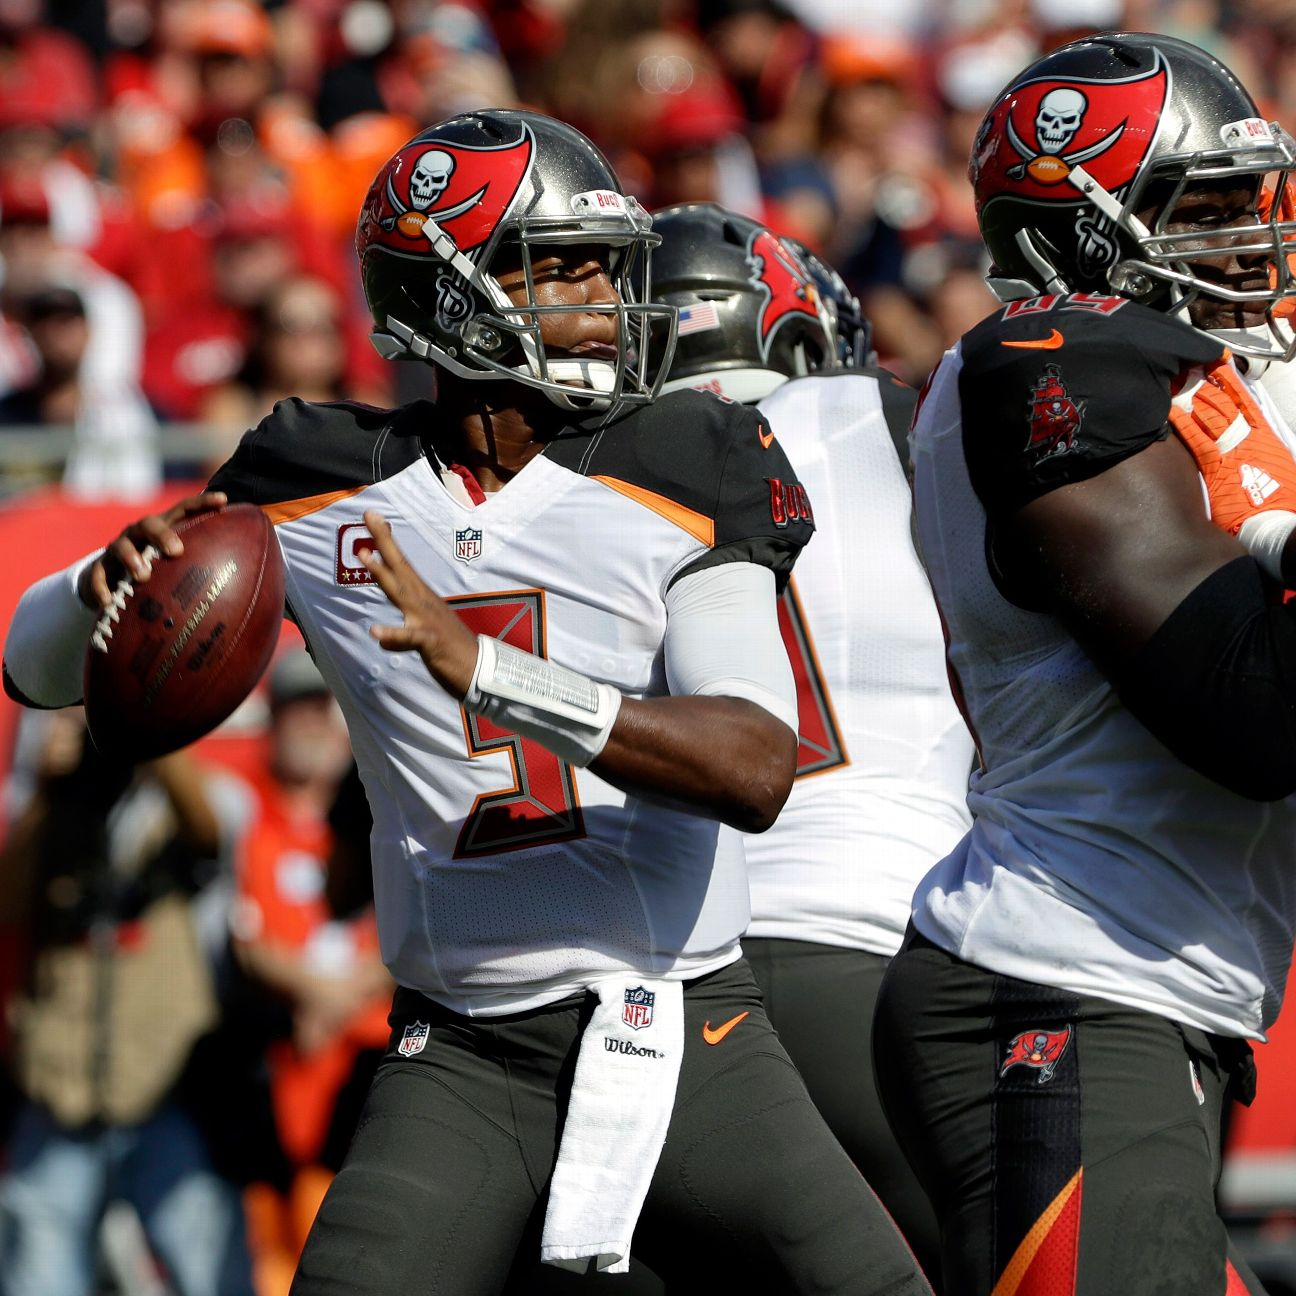 Denver Broncos Halftime Adjustments Key To Broncos 2 0: Bucaneers, Jameis Winston In Awful Predicament Without